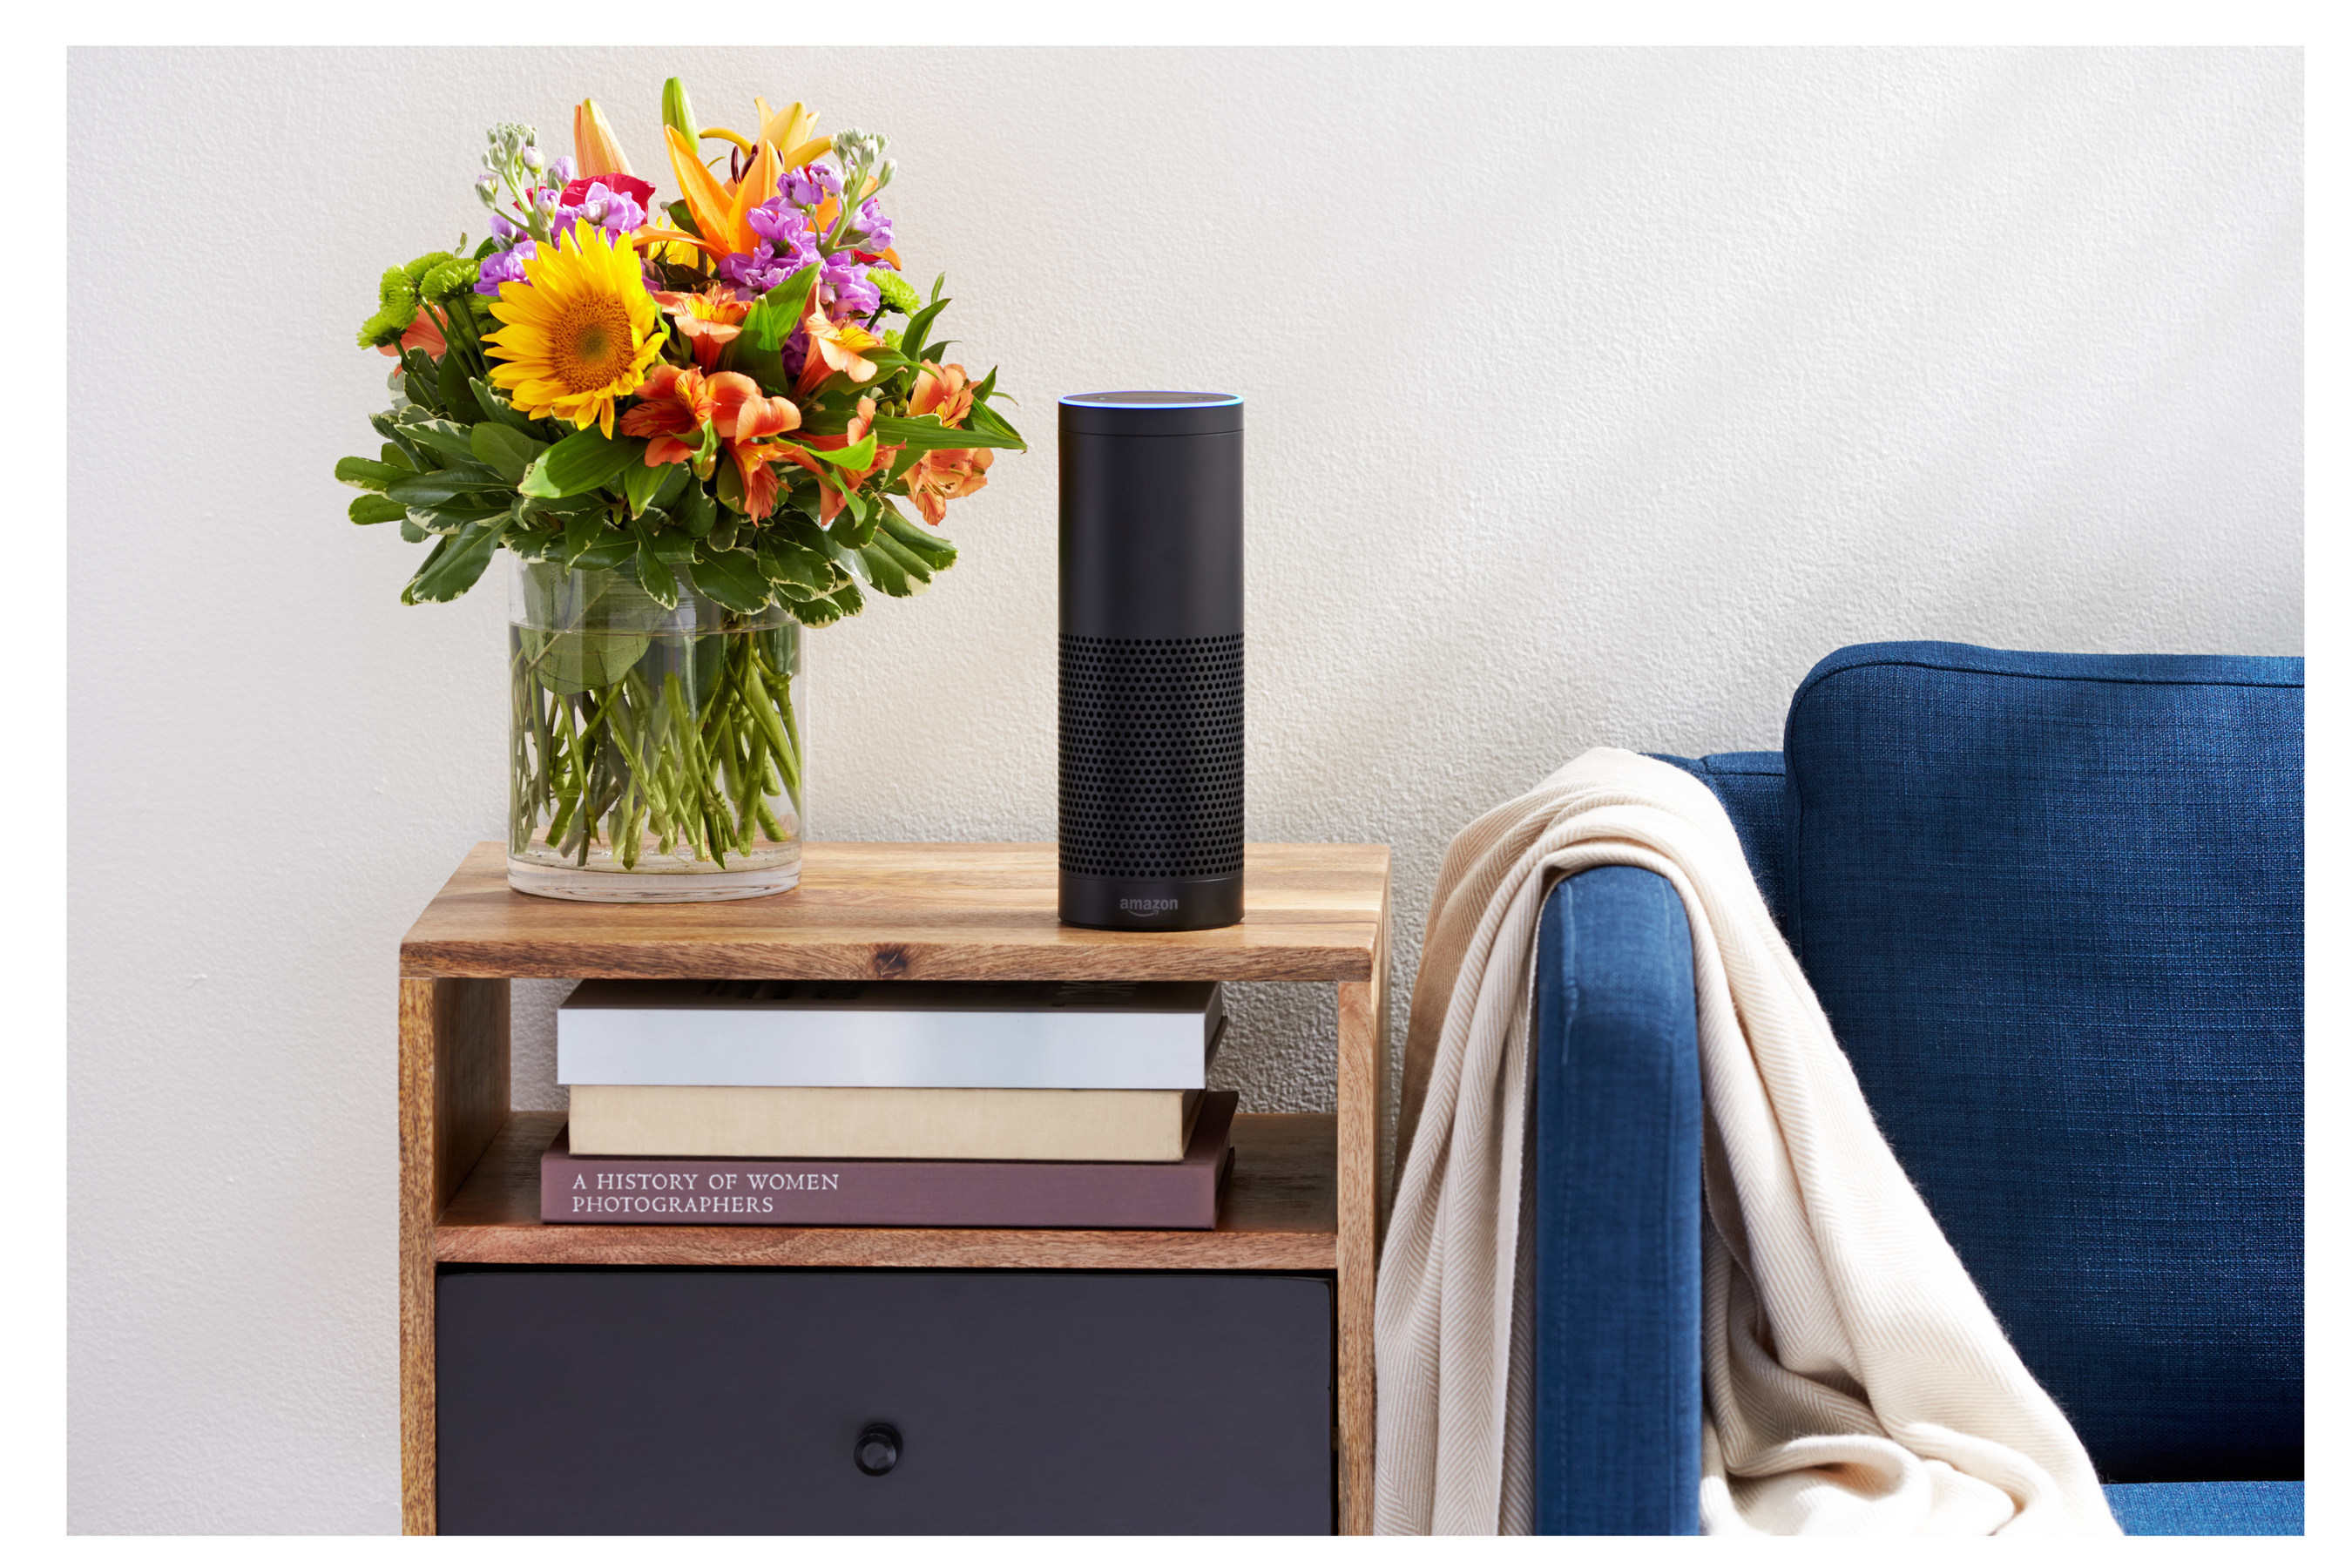 1-800-FLOWERS.COM(R) To Offer Floral Gifting Through Amazon Alexa